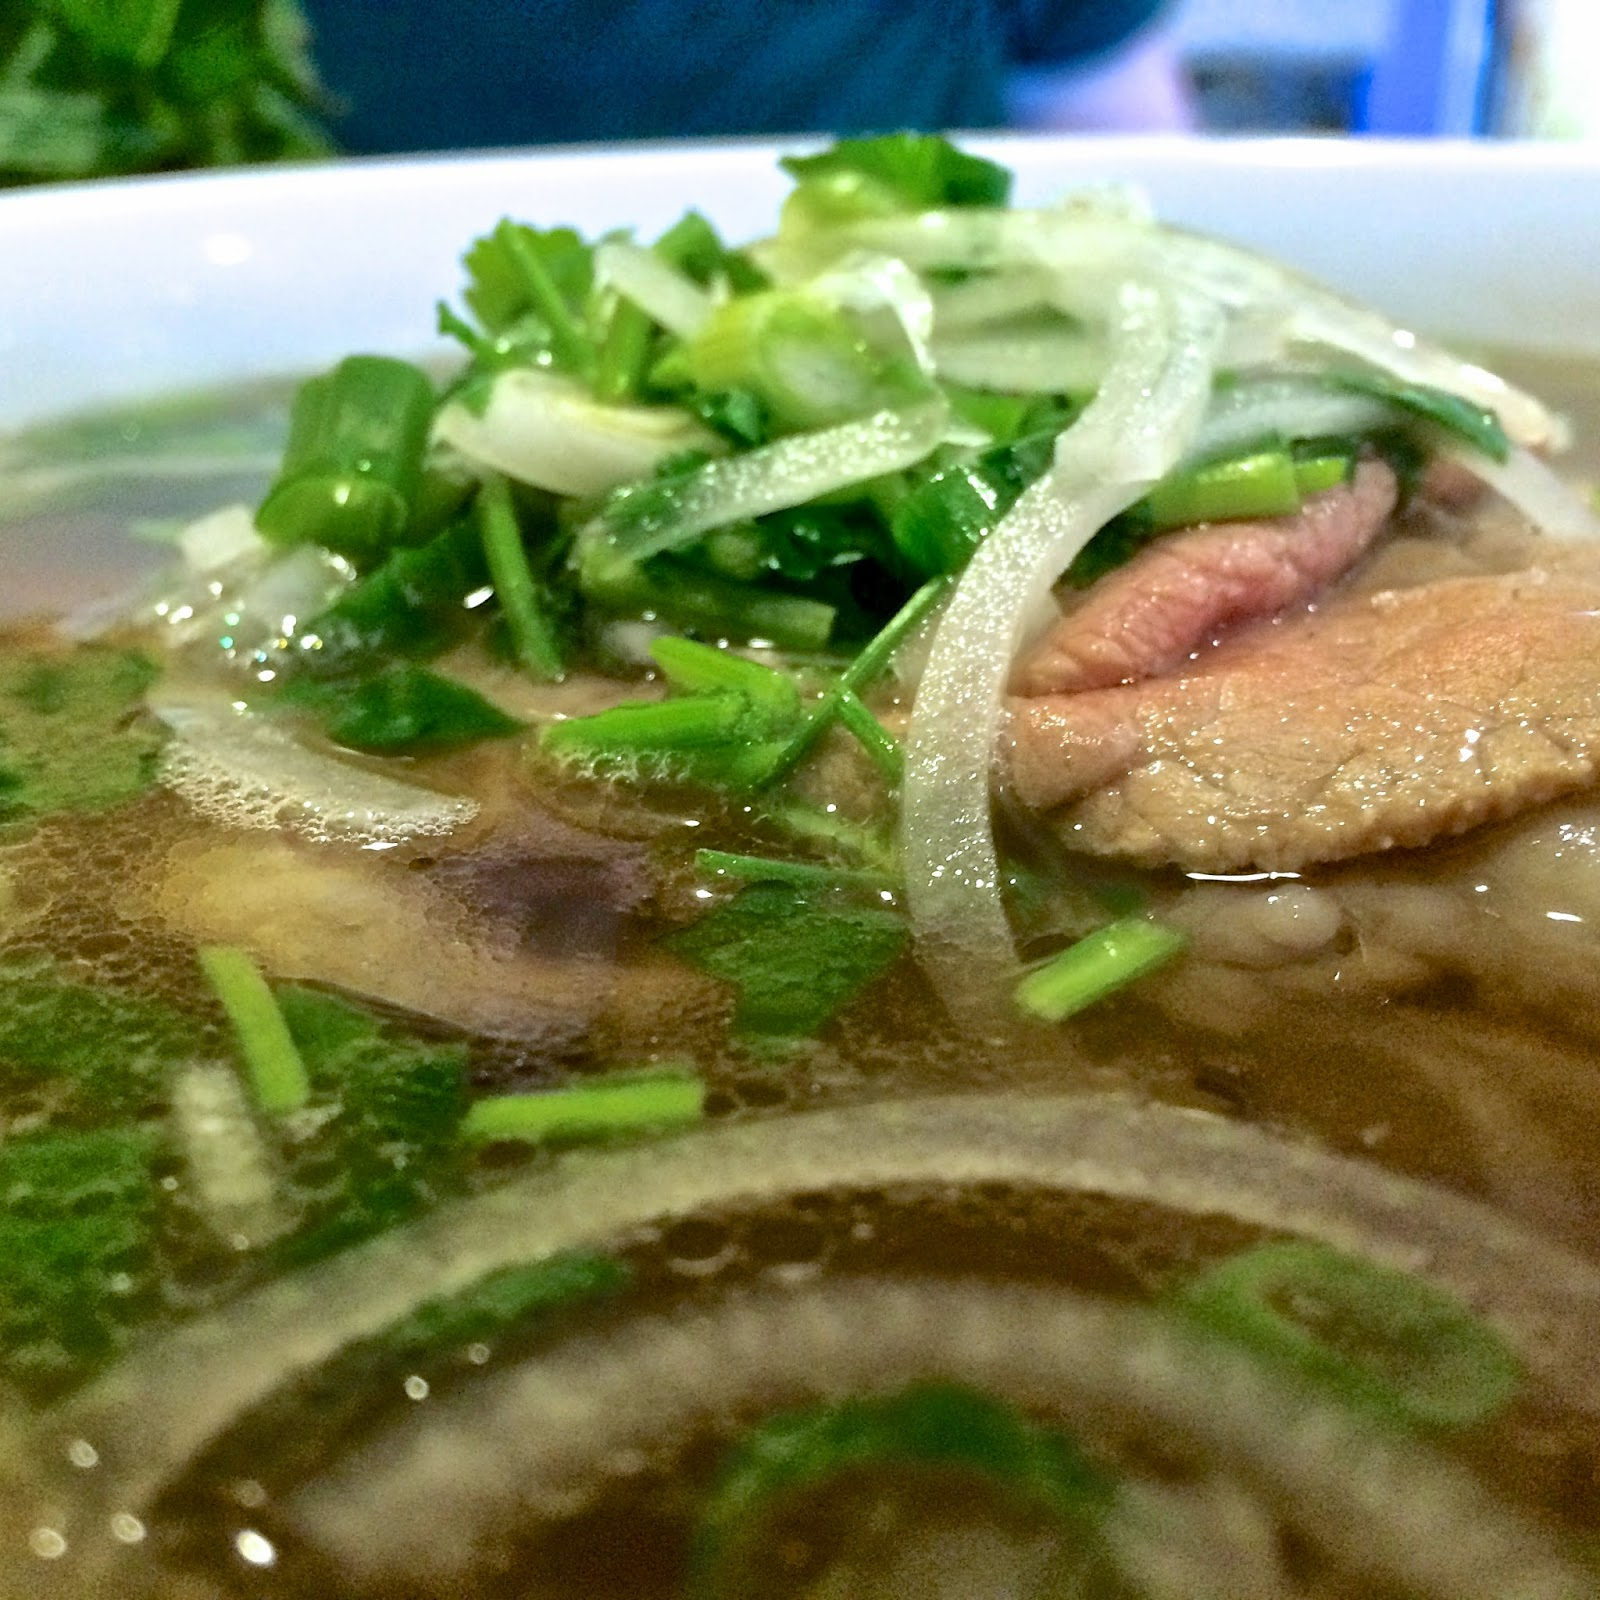 Viet Garden's Pho Dac Biet: Eye Round Steak, Well-Done Flank, Fat Brisket, Soft Tendon, & Meatballs $7.99